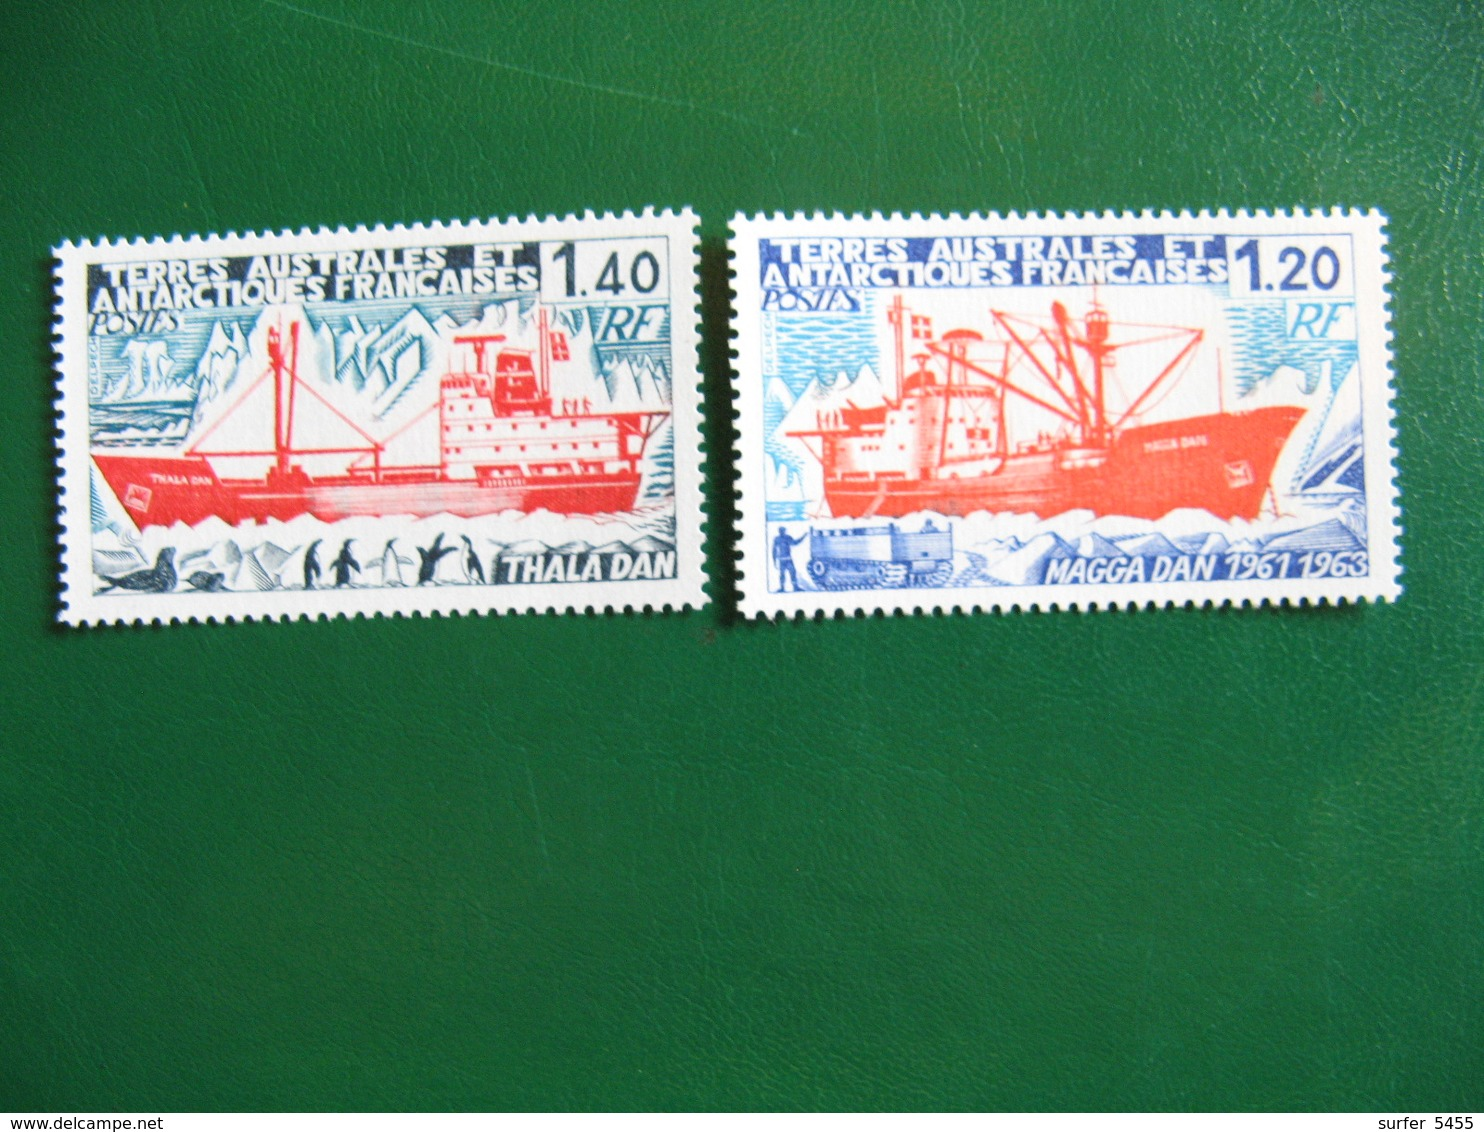 TAAF YVERT POSTE ORDINAIRE N° 66/67 - TIMBRES NEUFS** LUXE - MNH - SERIE COMPLETE - COTE 7,60 EUROS - Terres Australes Et Antarctiques Françaises (TAAF)